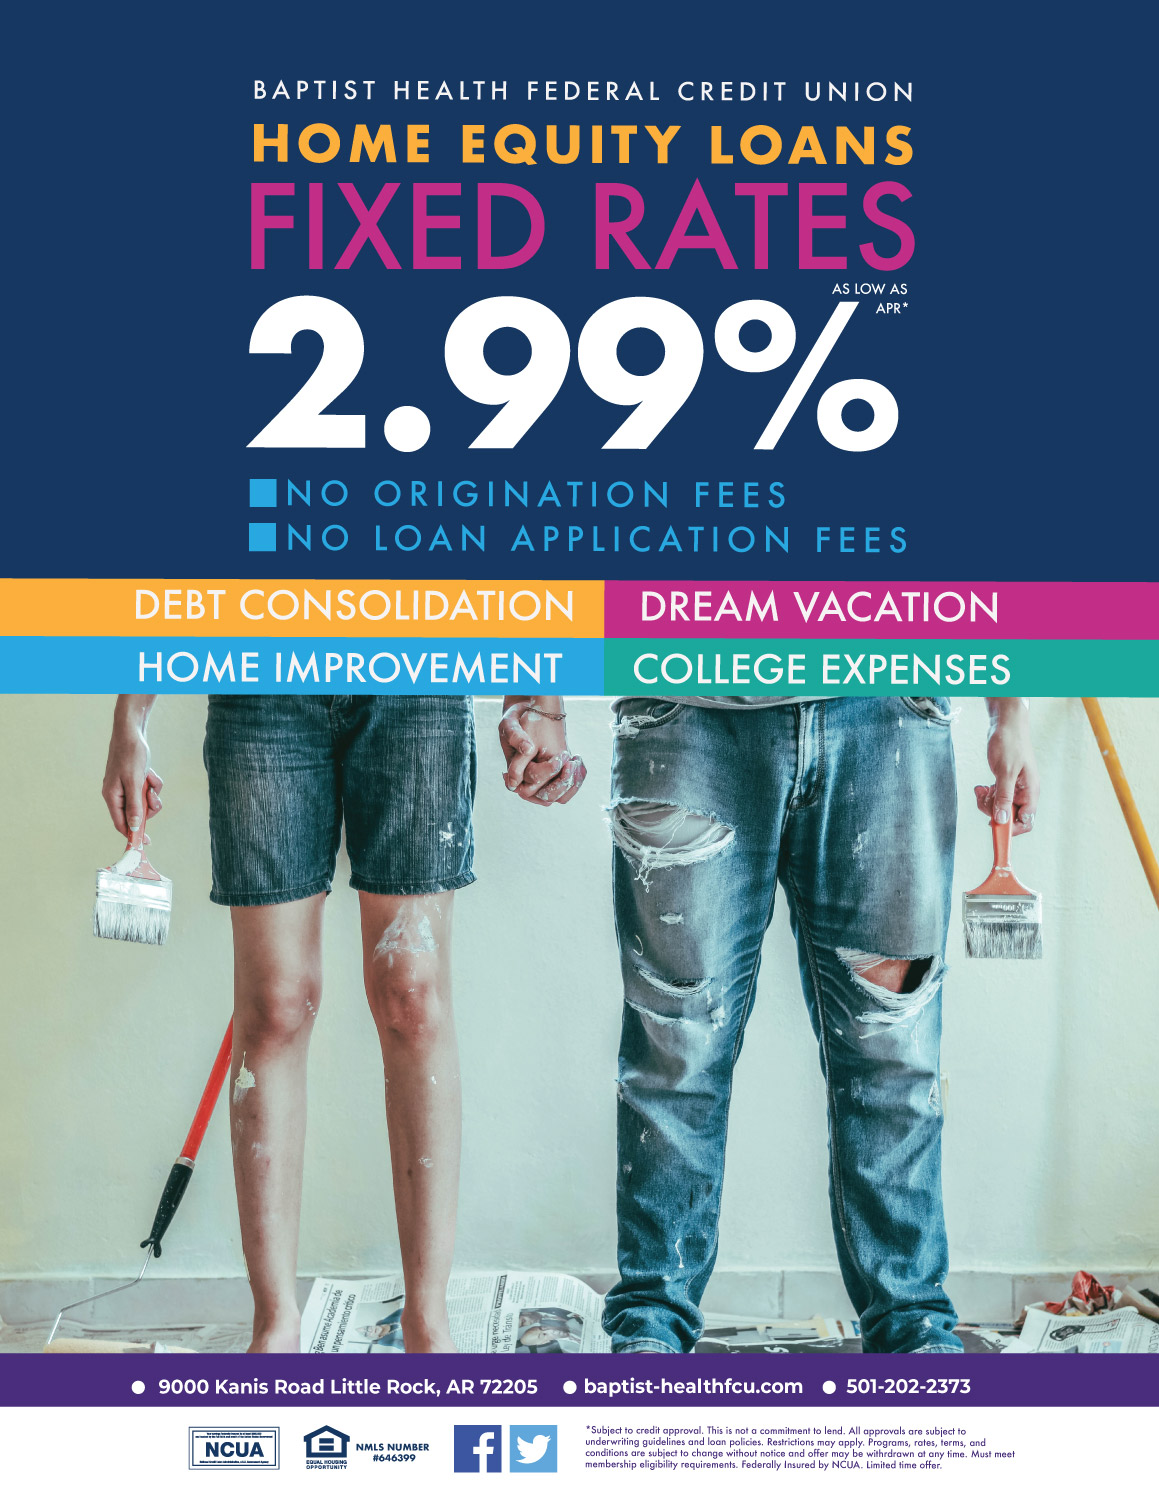 Fixed Rate Home Equity Loans as low as 2.99% APR